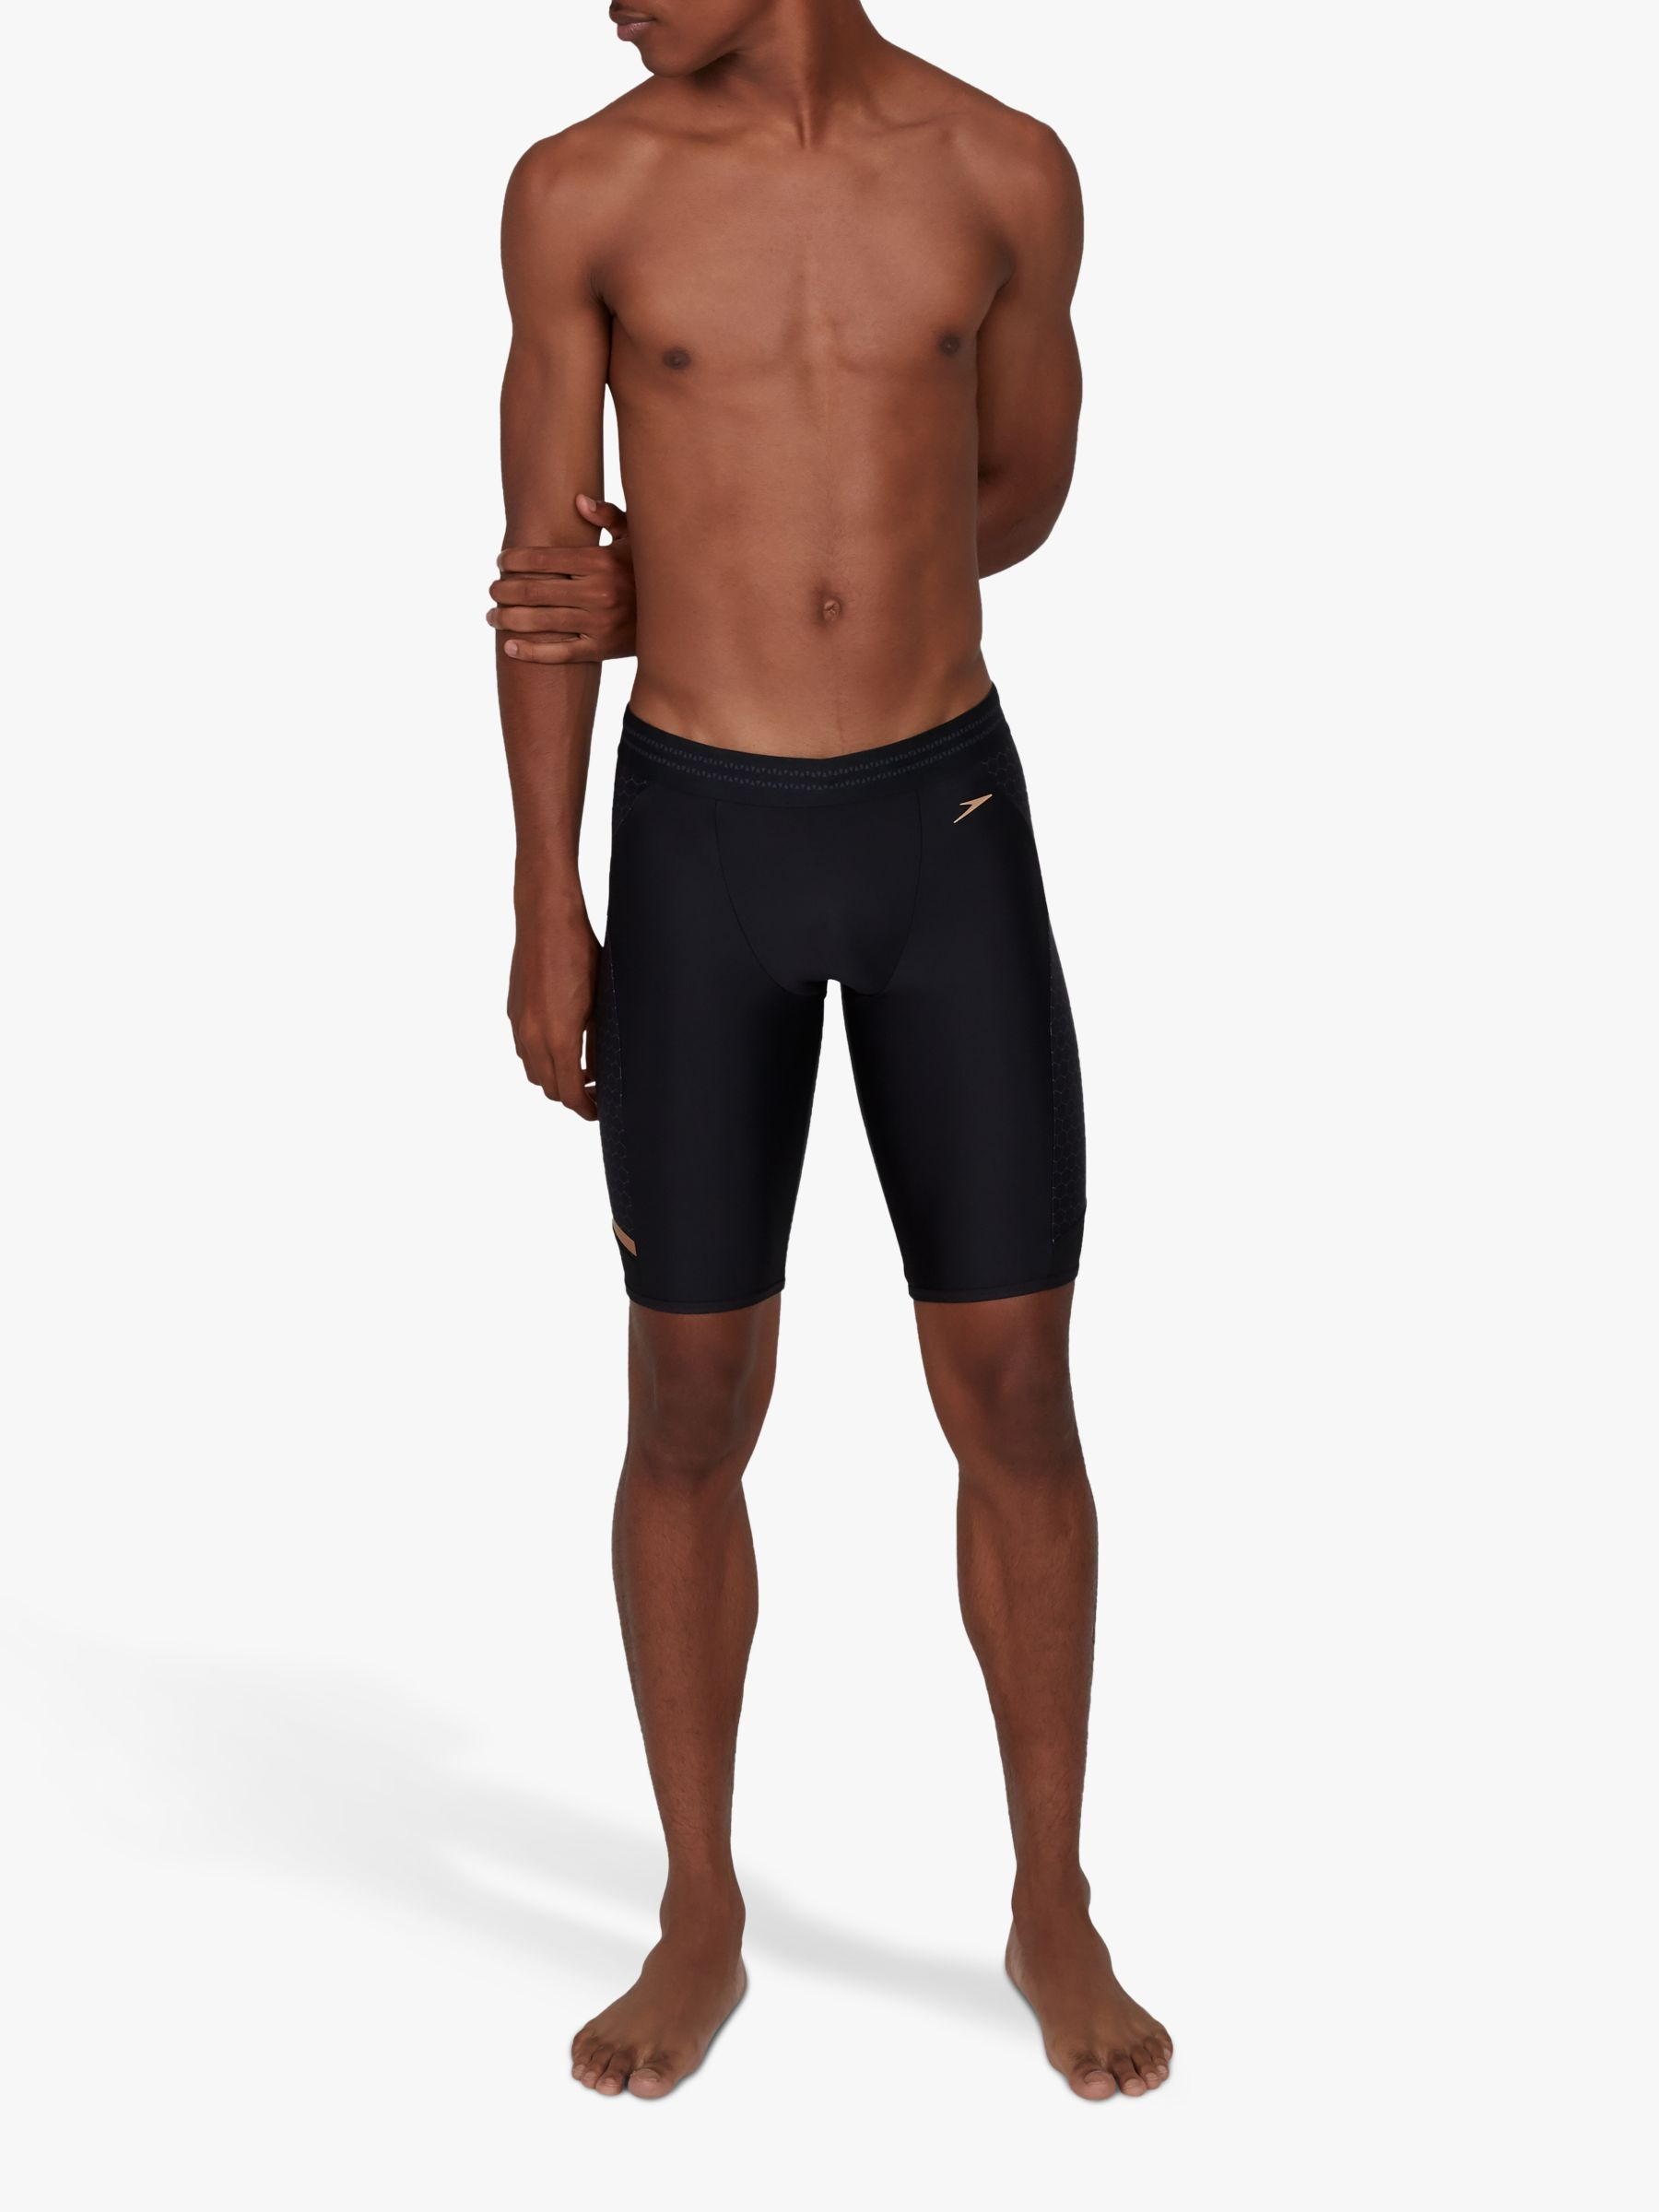 Speedo Speedo Hexagonal Mesh Jammer Swim Shorts, Black/USA Charcoal